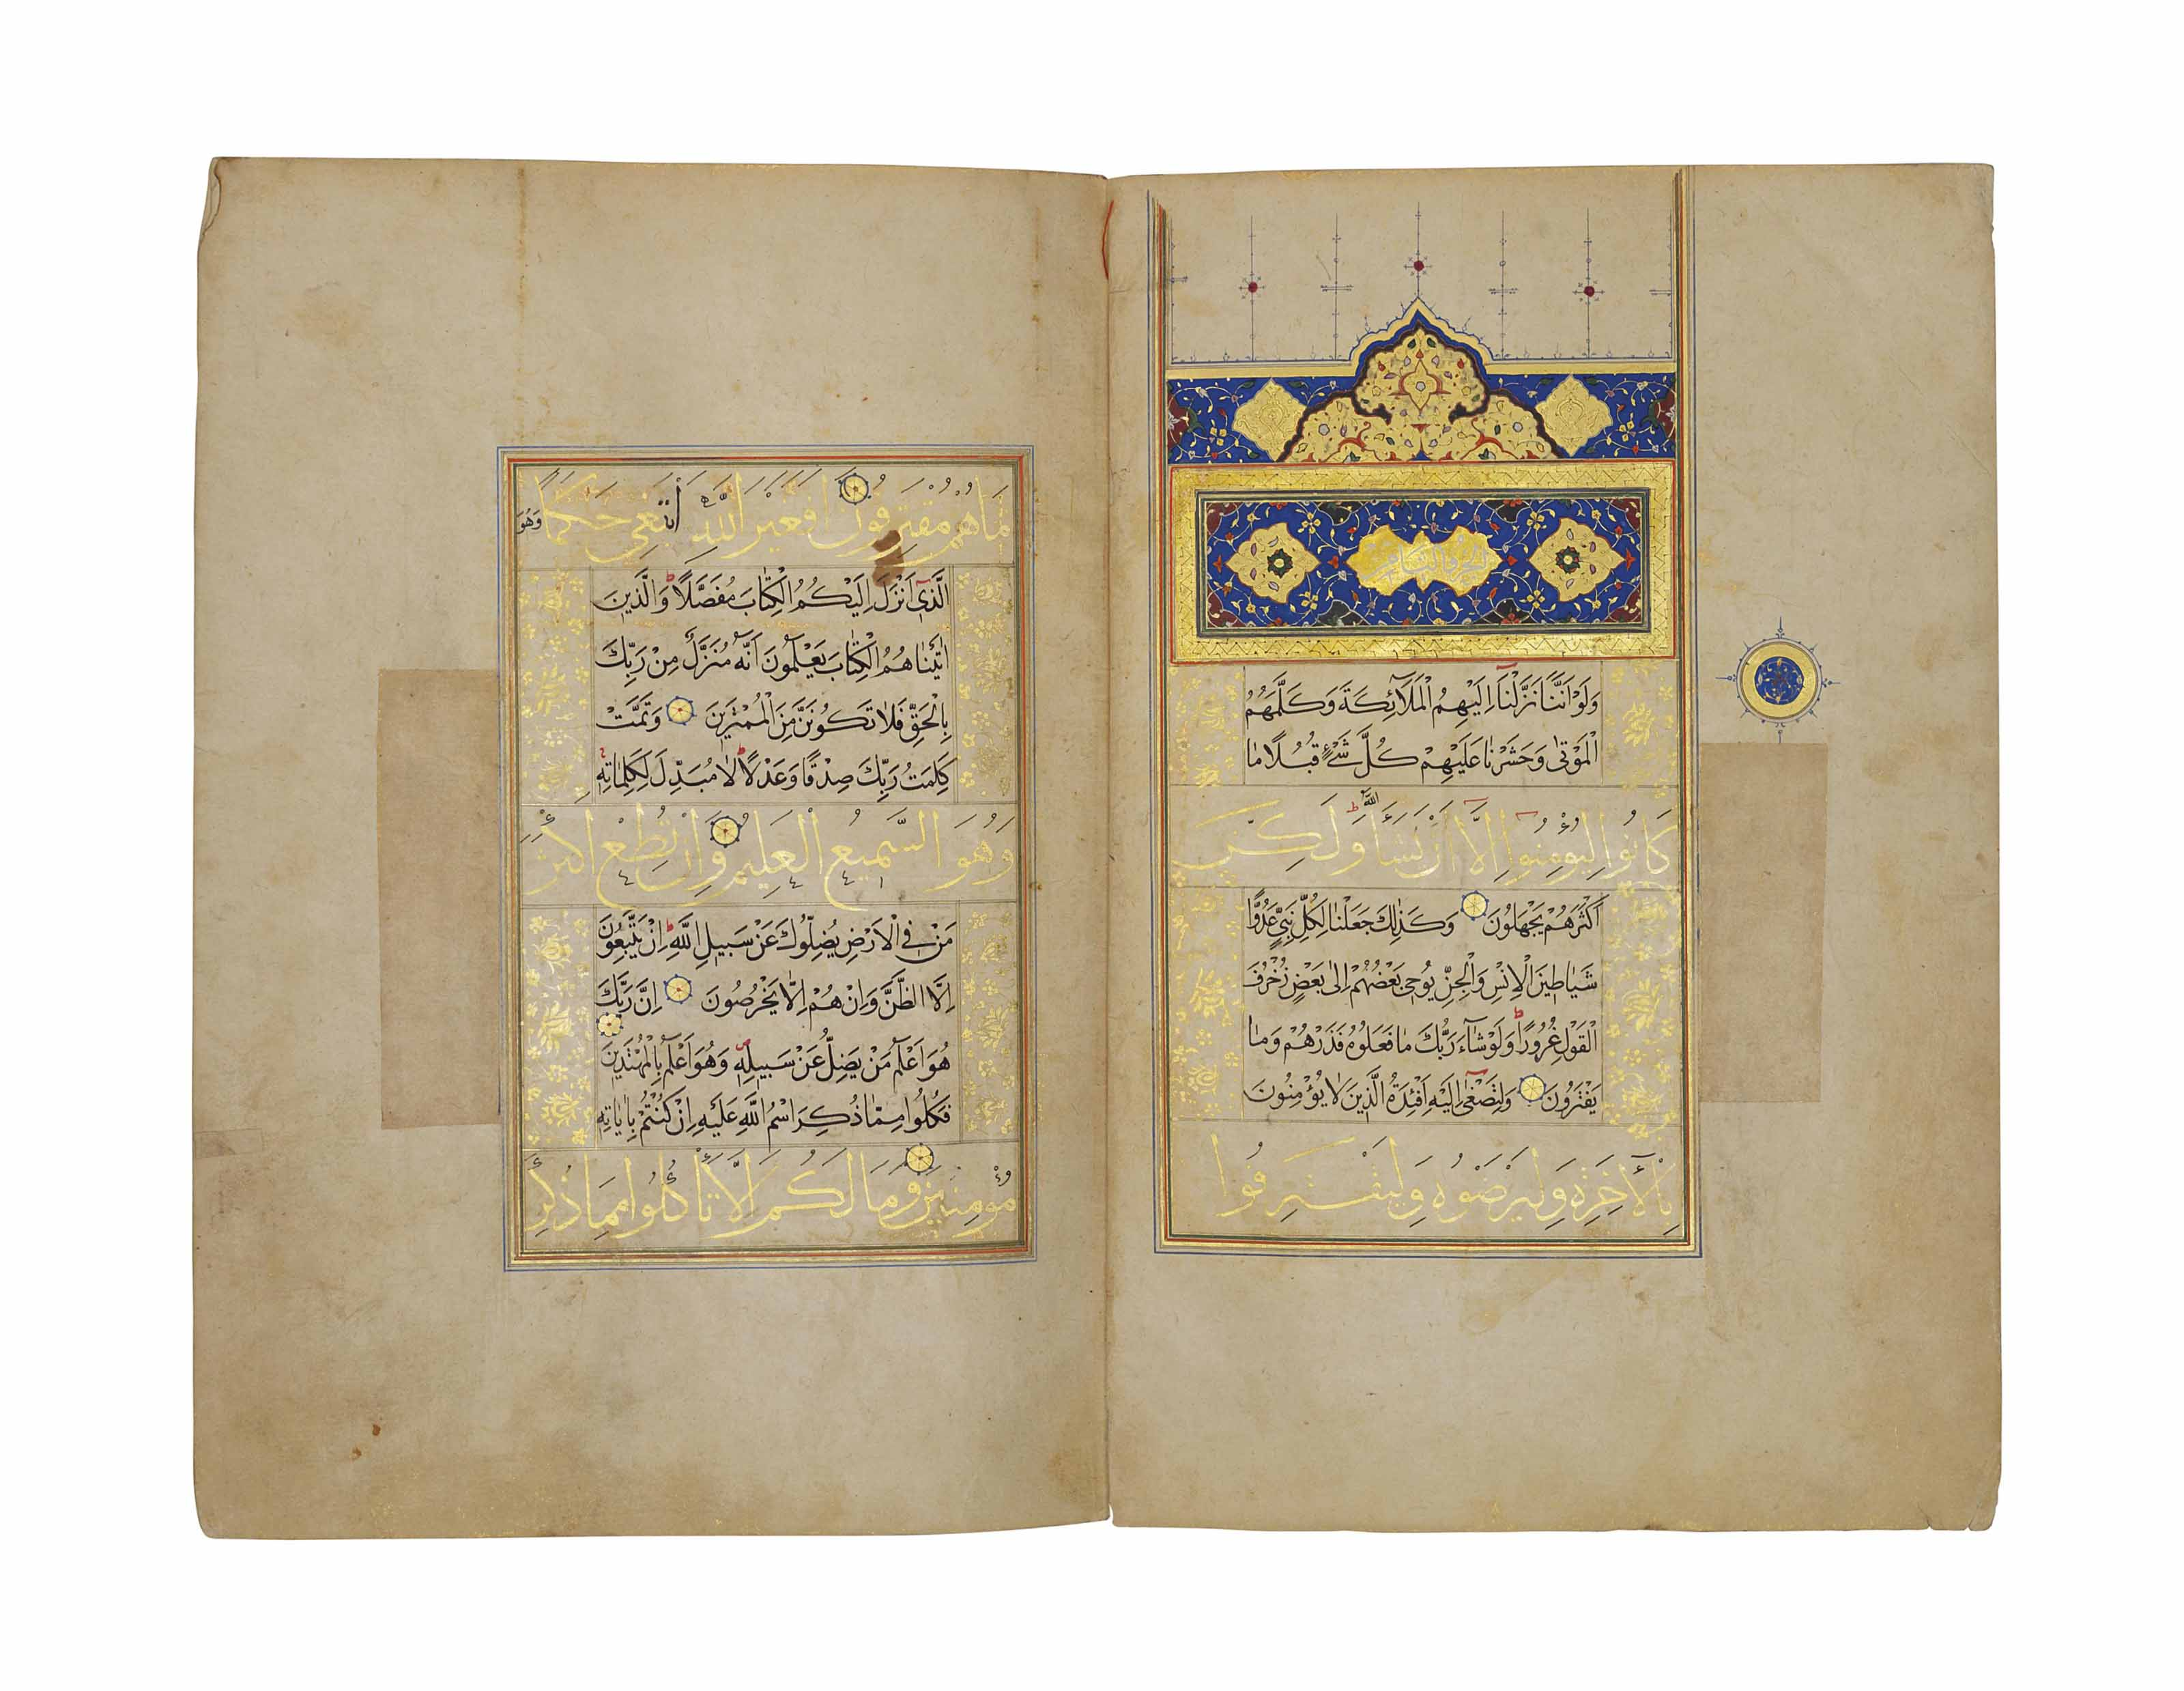 A QUR'AN JUZ' IN ORIGINAL BINDING